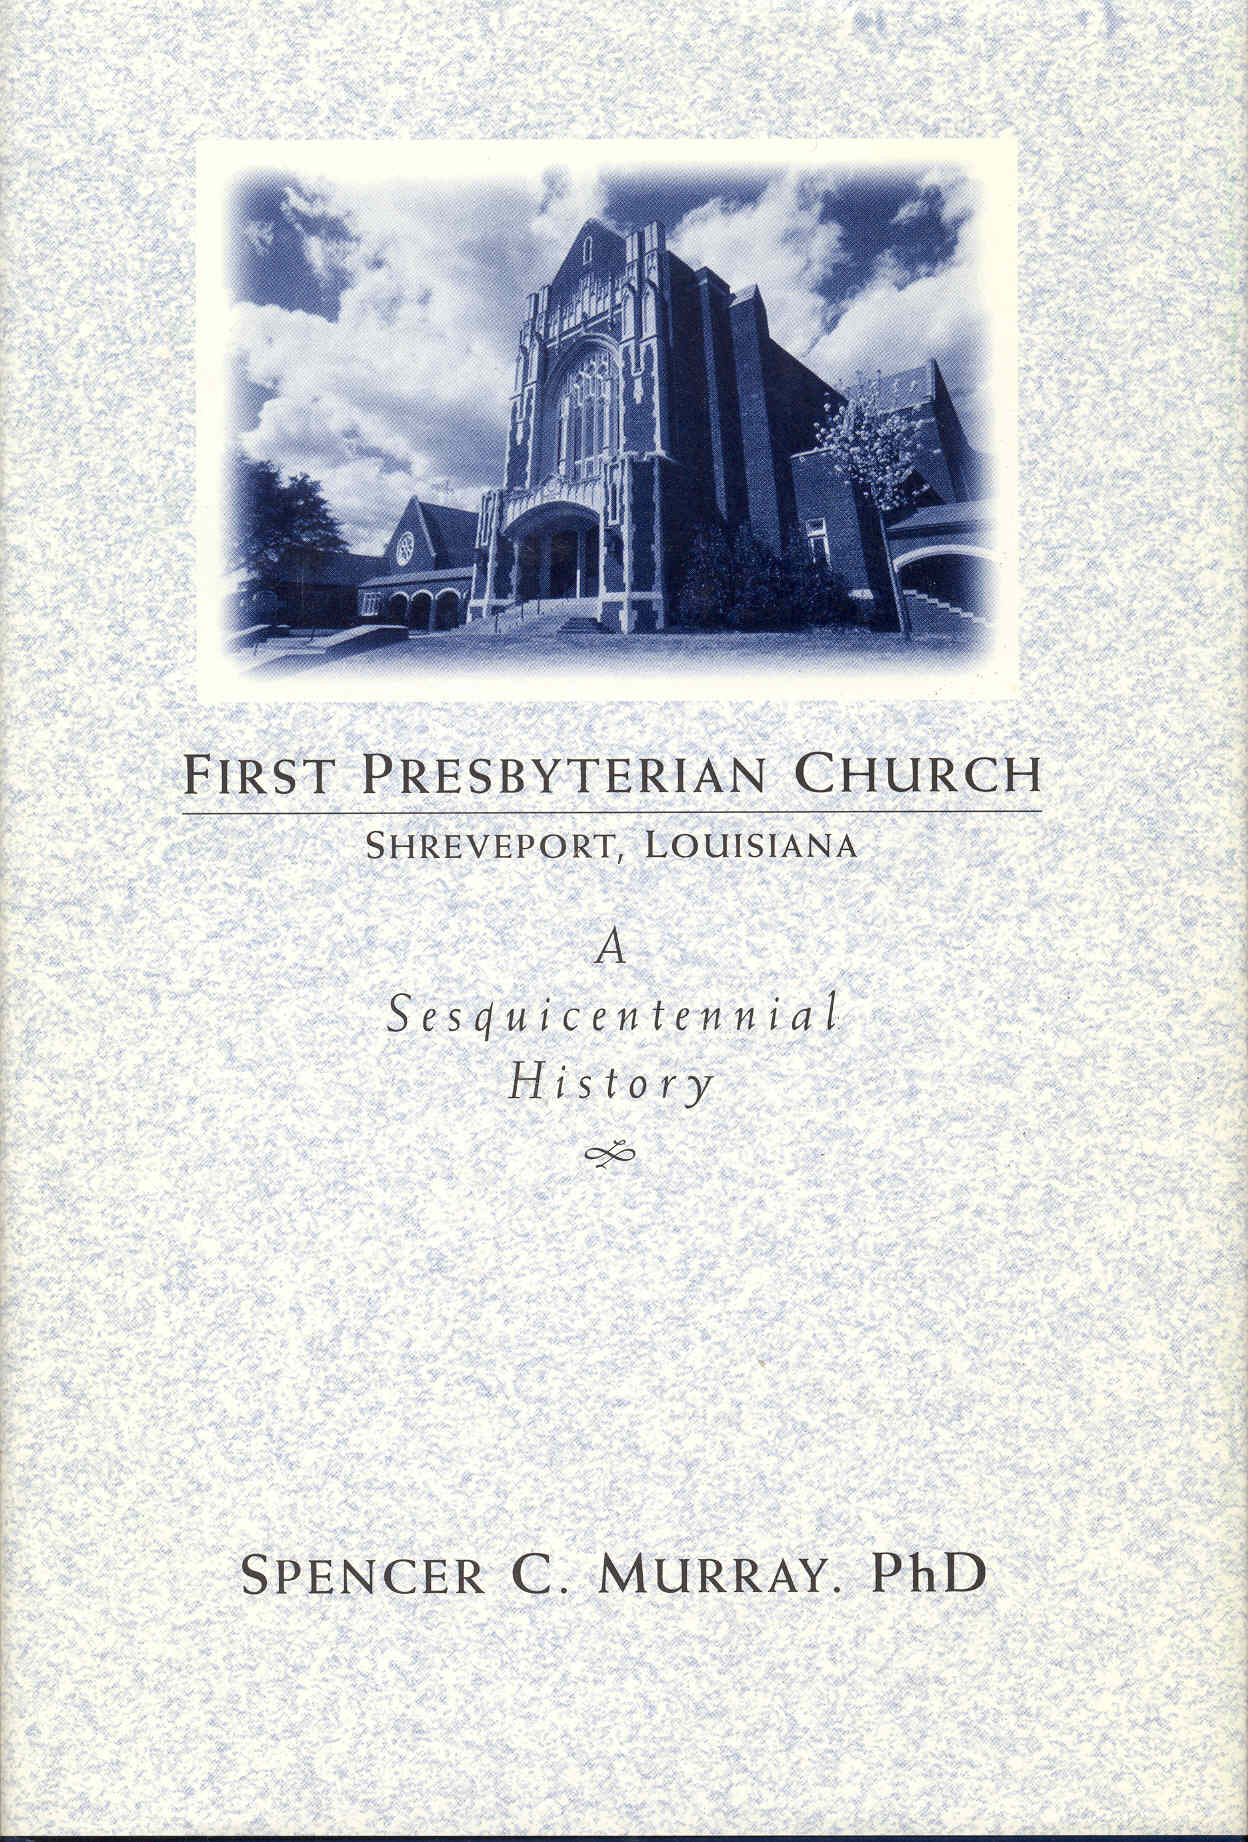 Image for First Presbyterian Church, Shreveport, Louisiana: A Sesquicentennial History